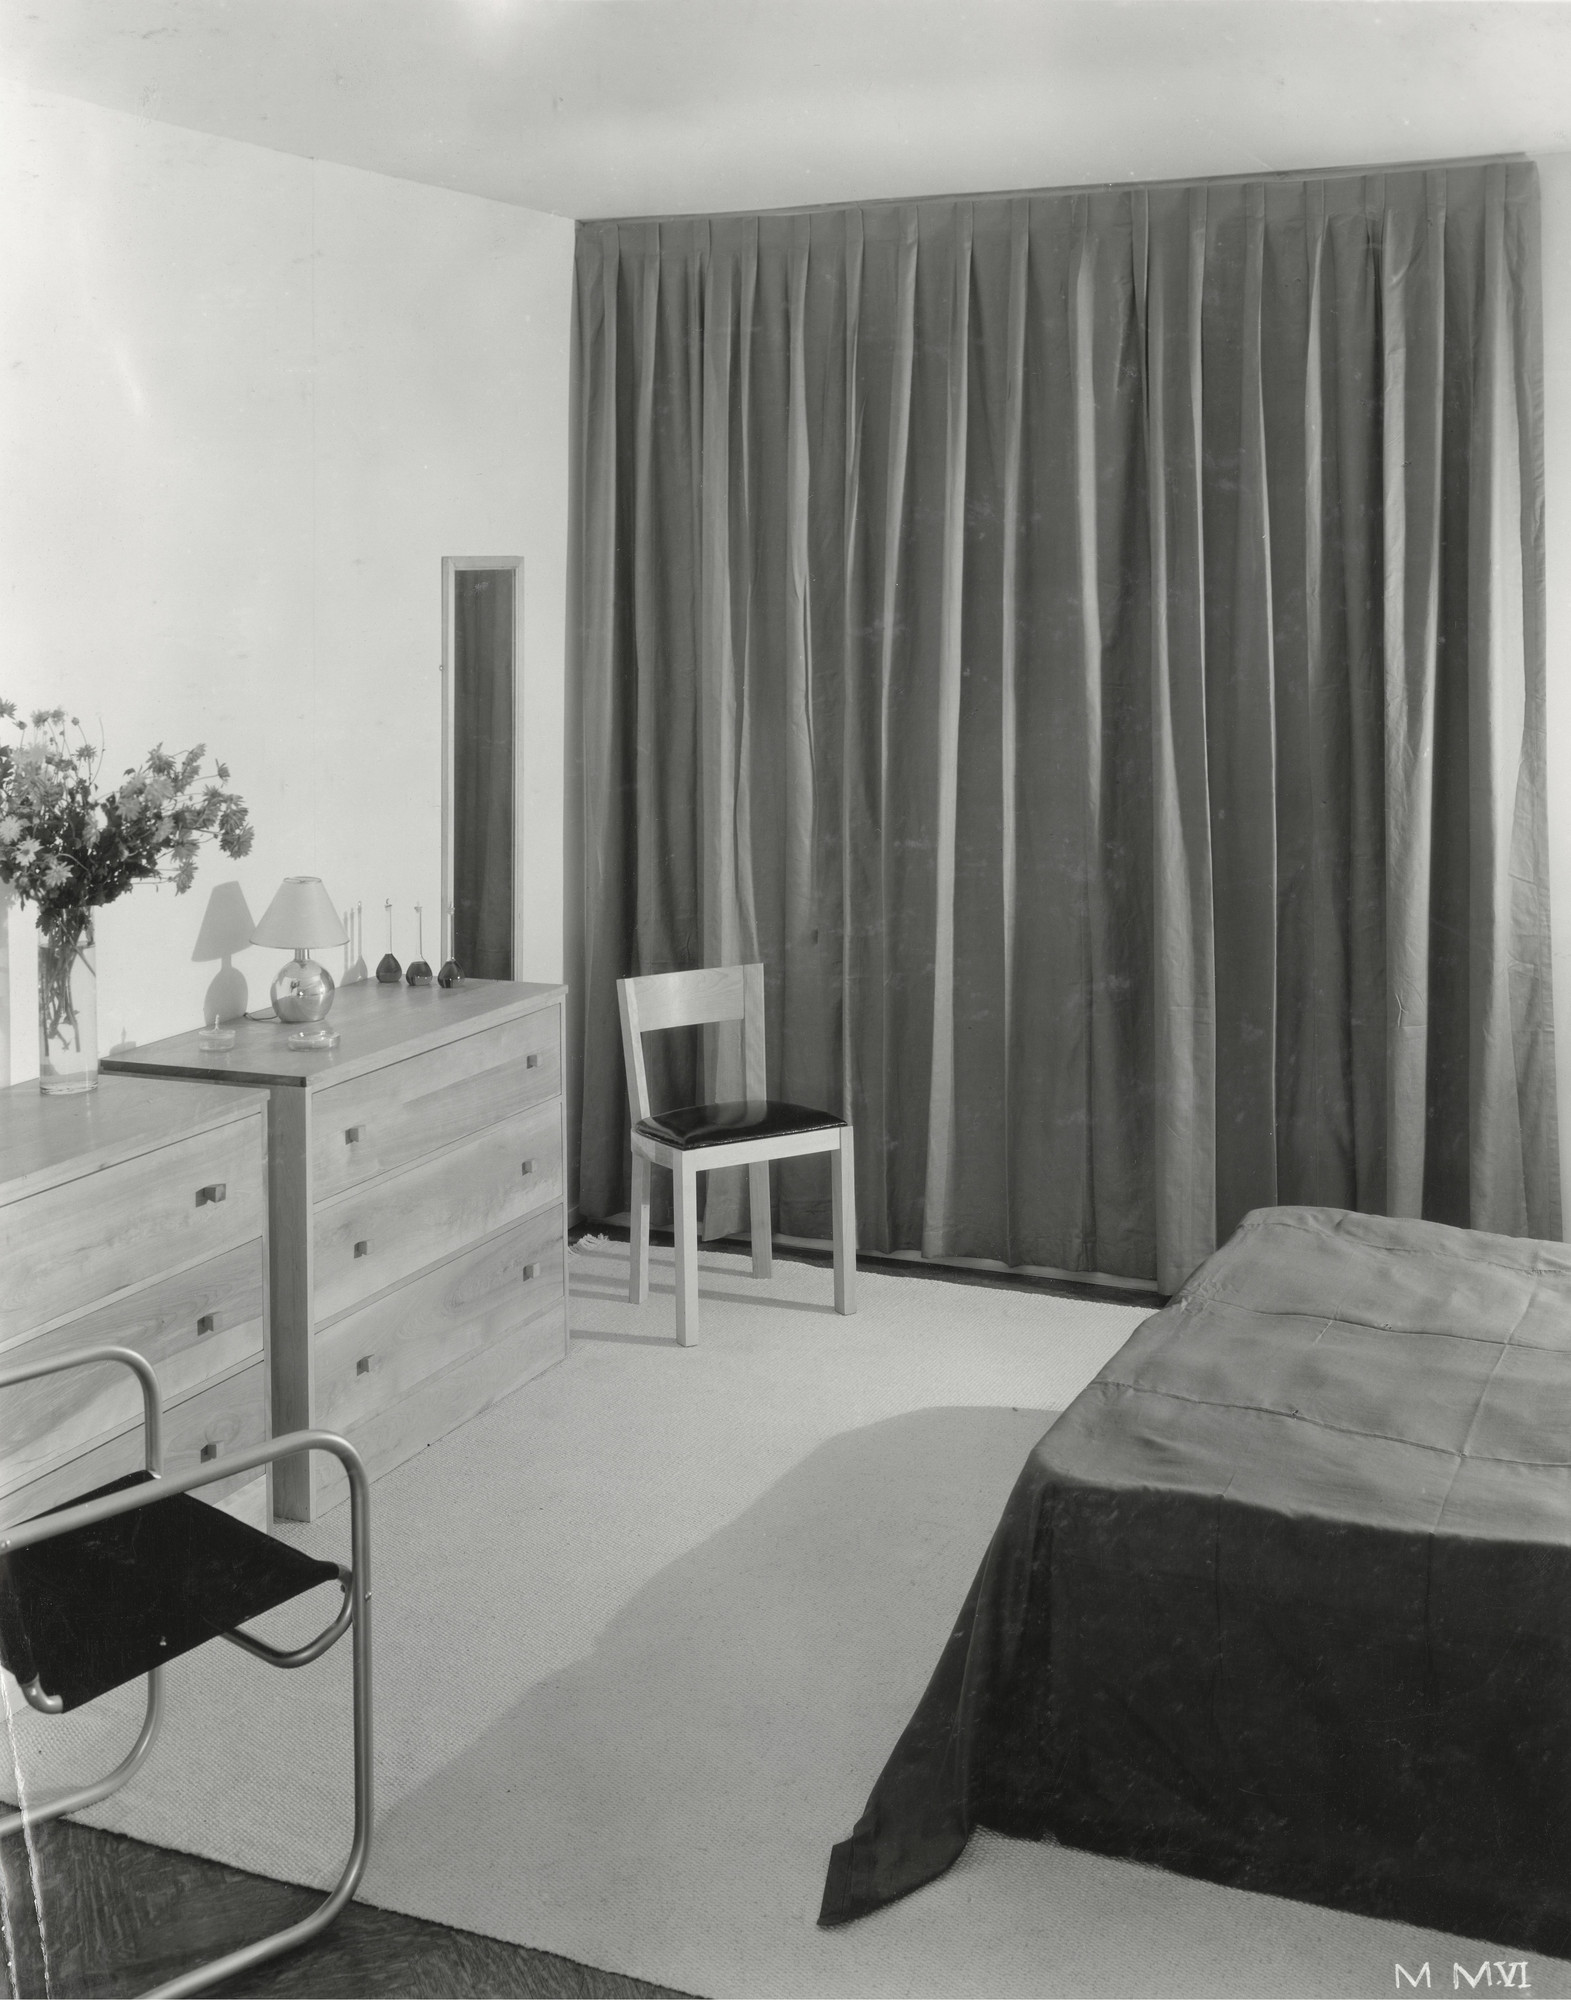 Bed room low cost modern apartment furniture by macy installation view of the exhibition housing exhibition of the city of new york